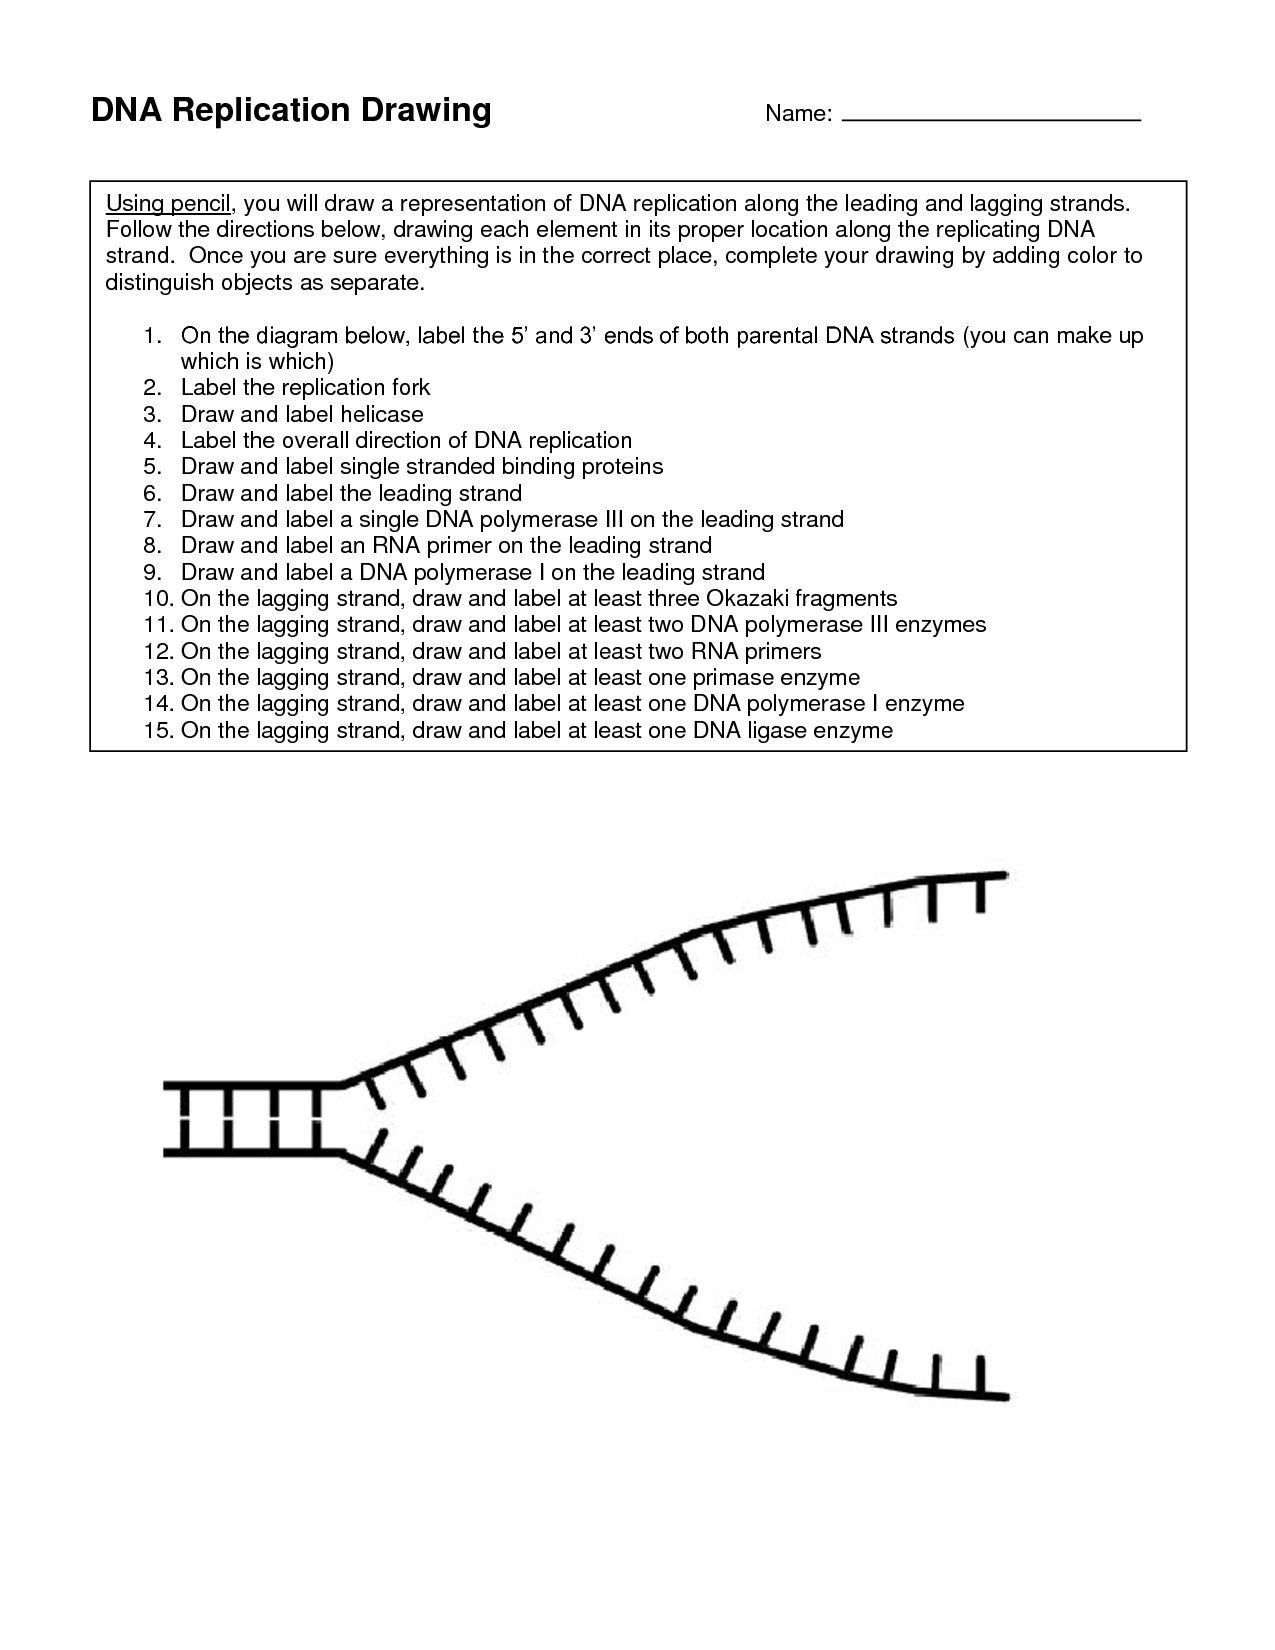 Dna And Replication Worksheet Answers 7 Prime Dna And Replication Worksheet Answers Di 2020 In 2020 Dna Replication Color Worksheets Dna Replication Activity